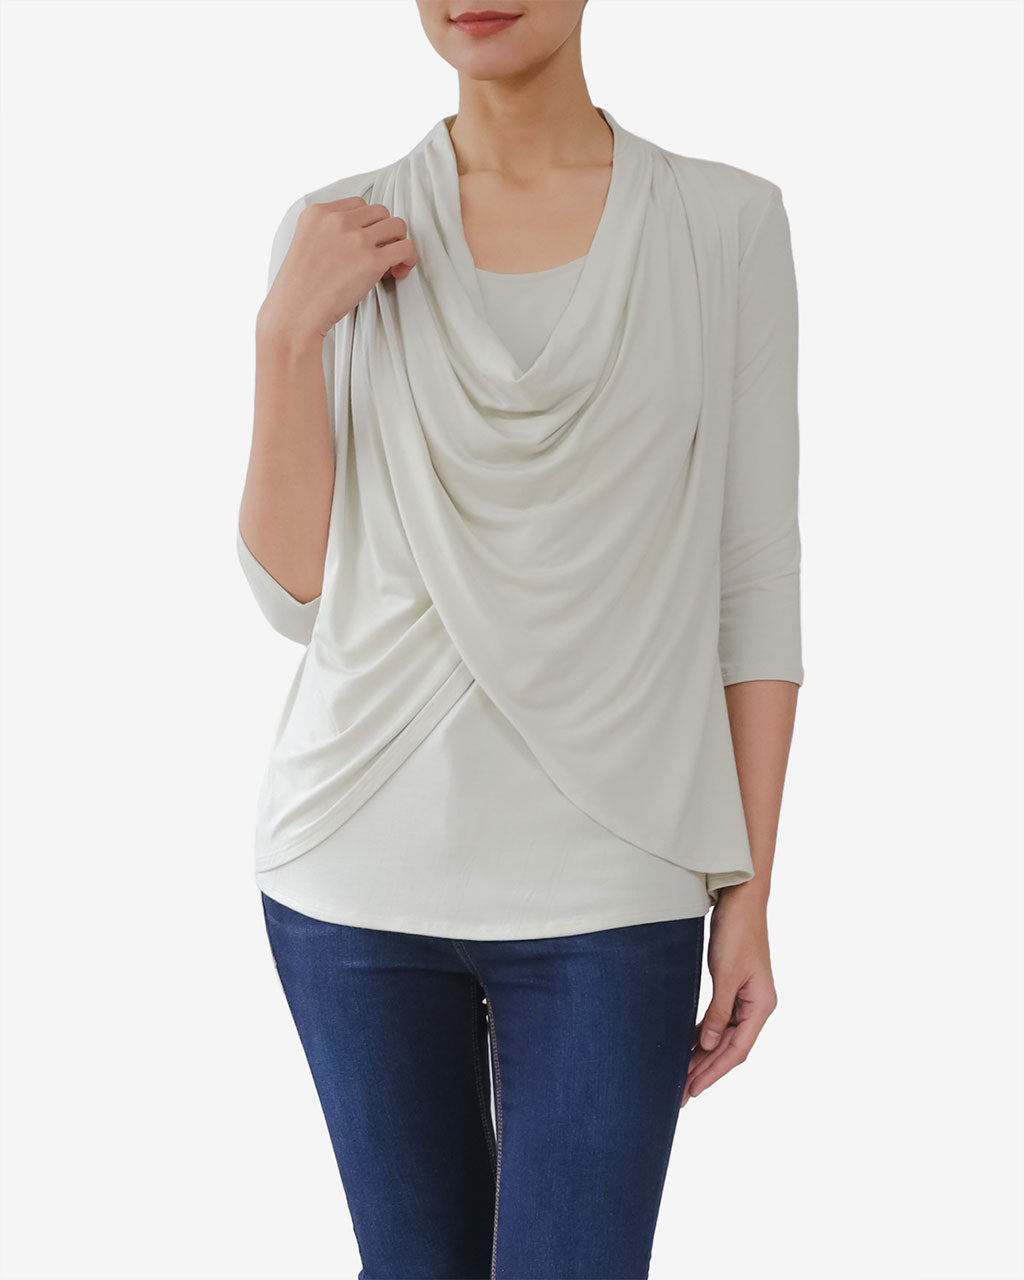 Maya Nursing Top